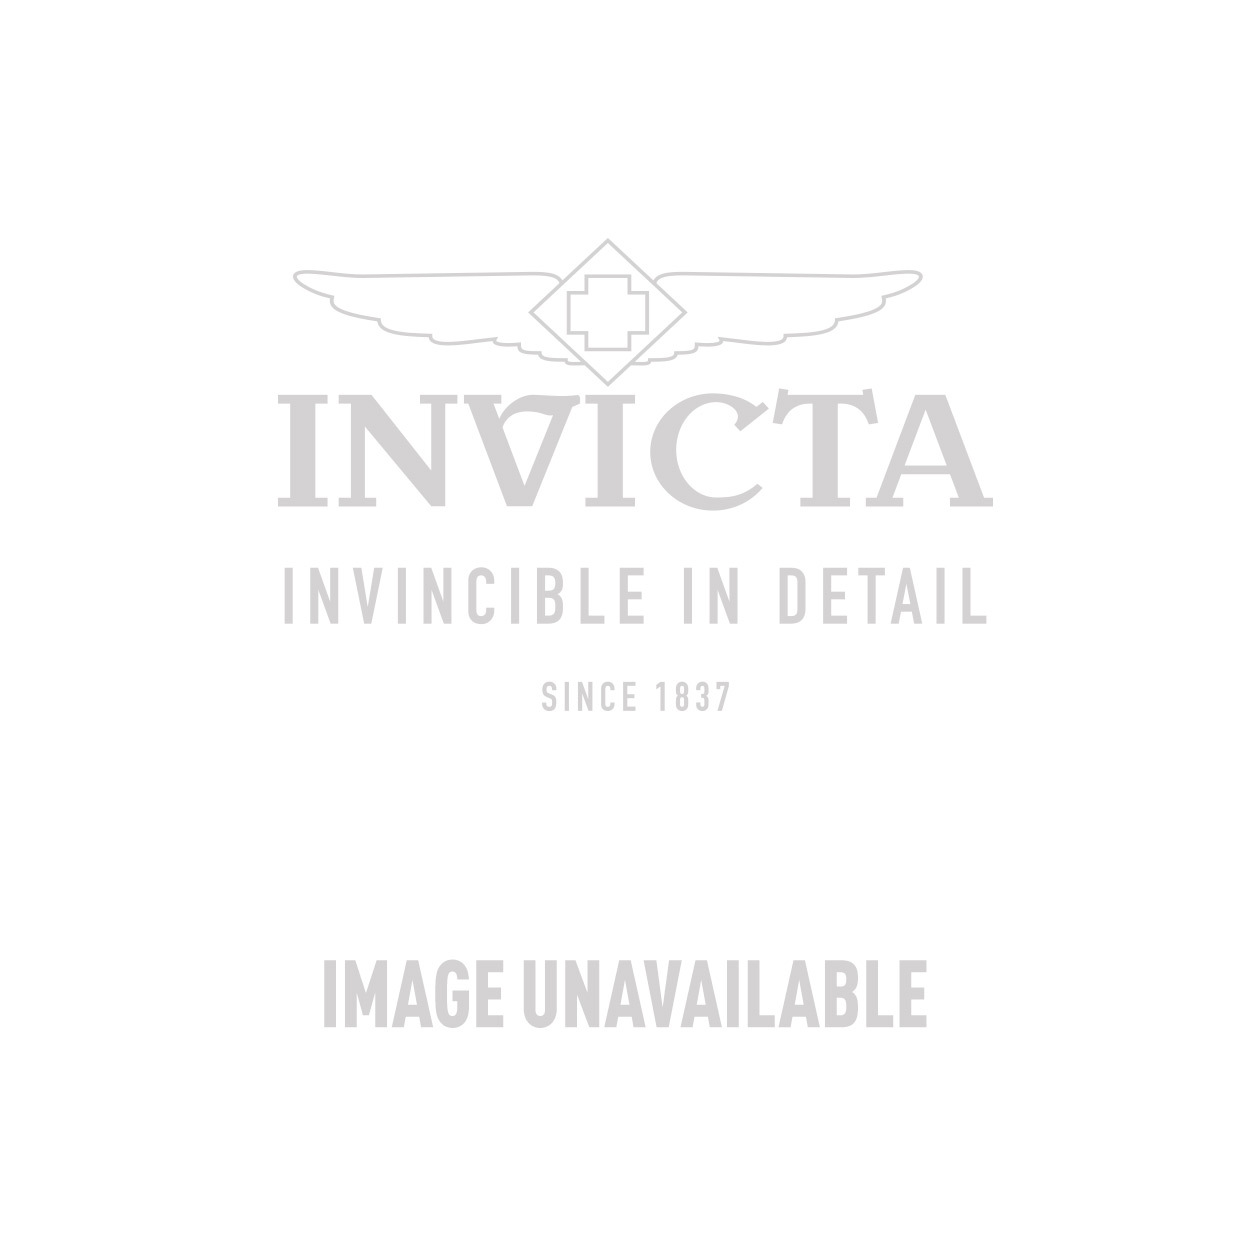 Invicta Reserve Swiss Made Quartz Watch - Rose Gold, Stainless Steel case Stainless Steel band - Model 11860